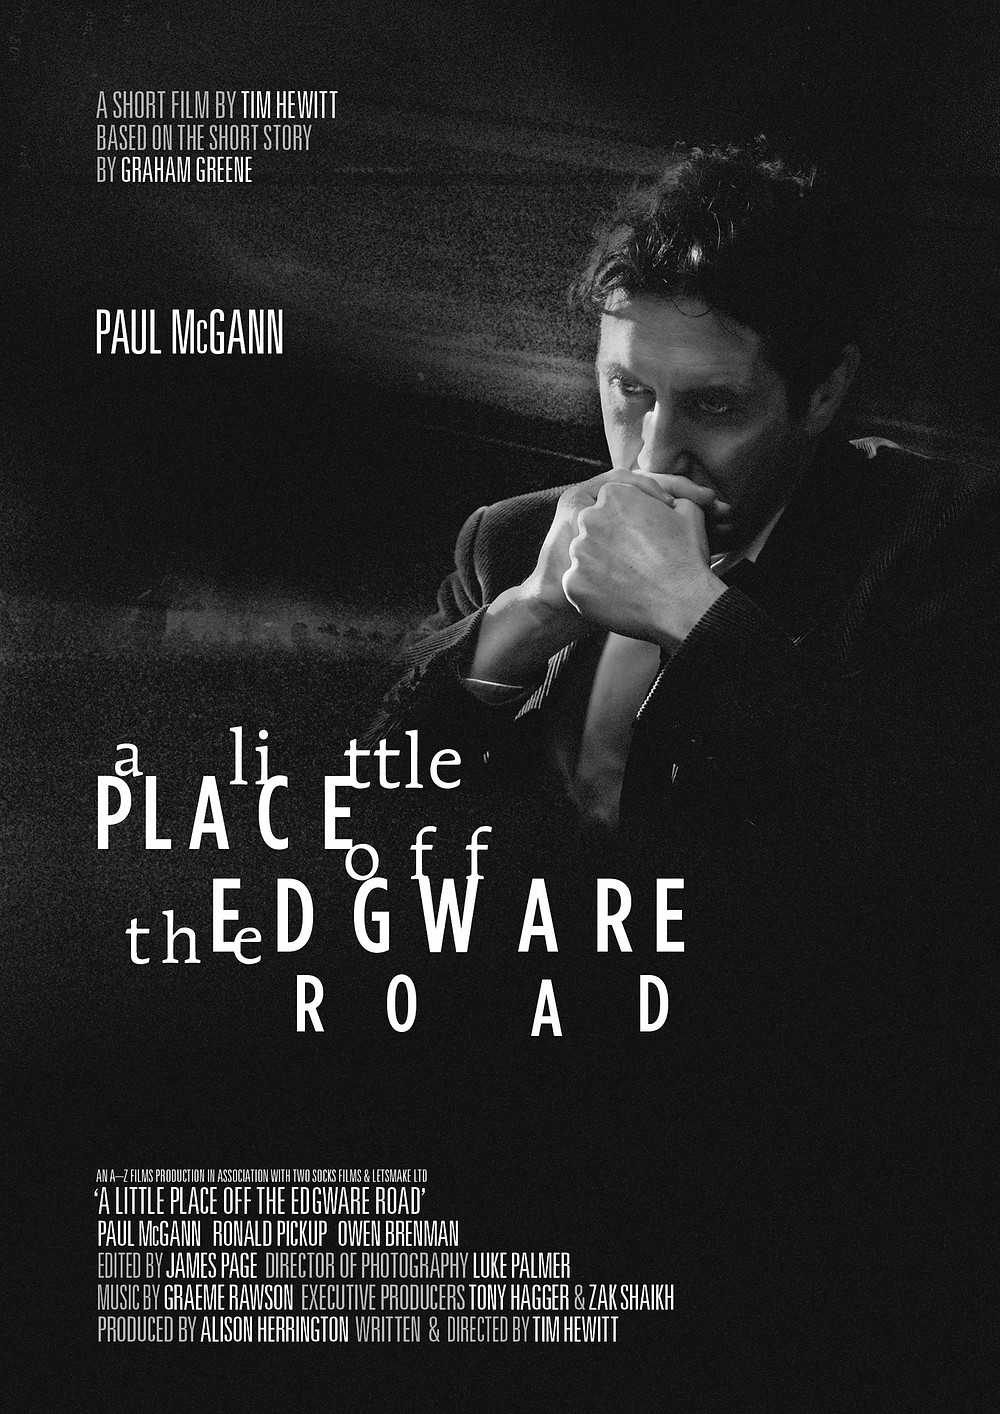 Poster for A Little Place Off The Edgware Road, showing protagonist Paul McGann.